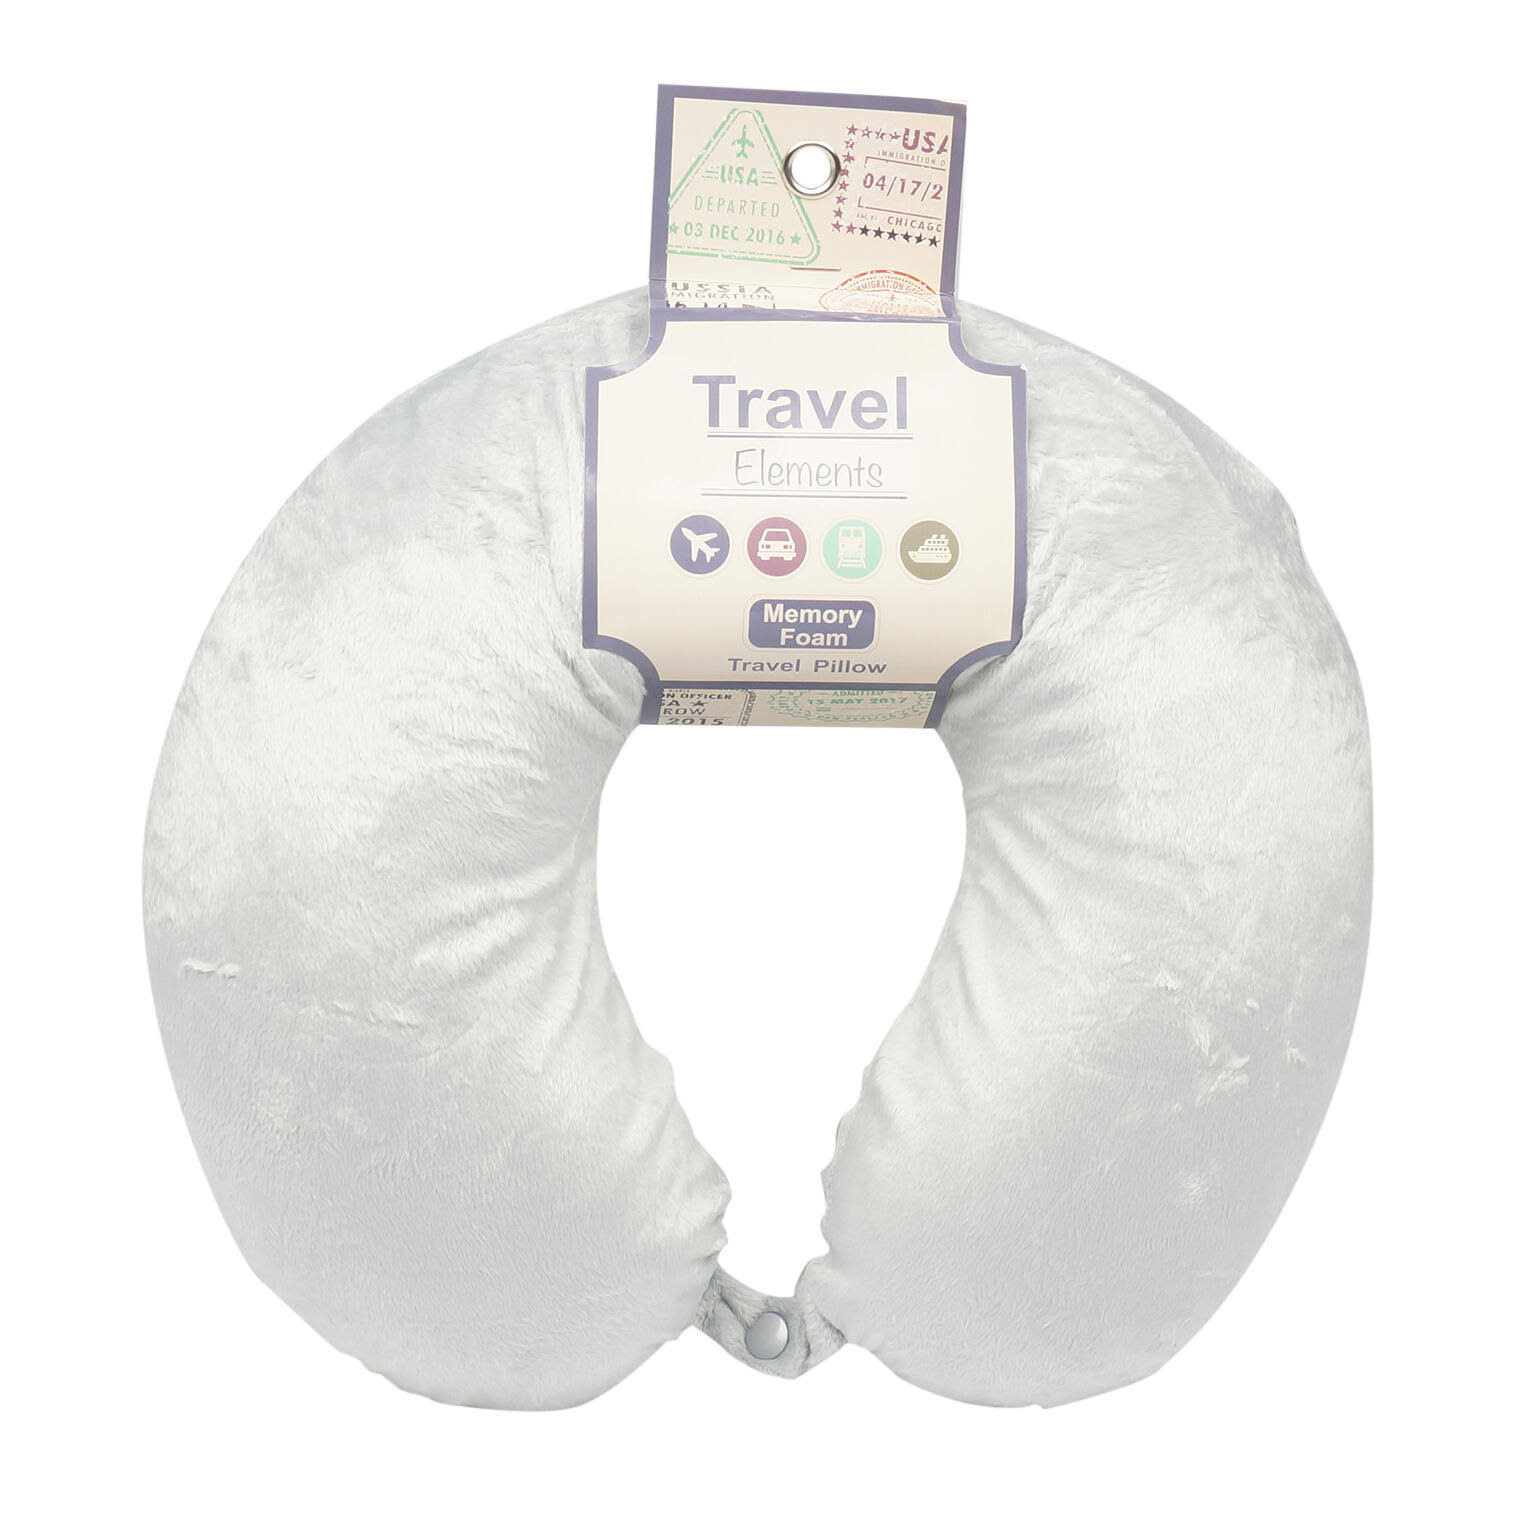 Travel Pillow Memory Foam Grey Wholesale, Cheap, Discount, Bulk